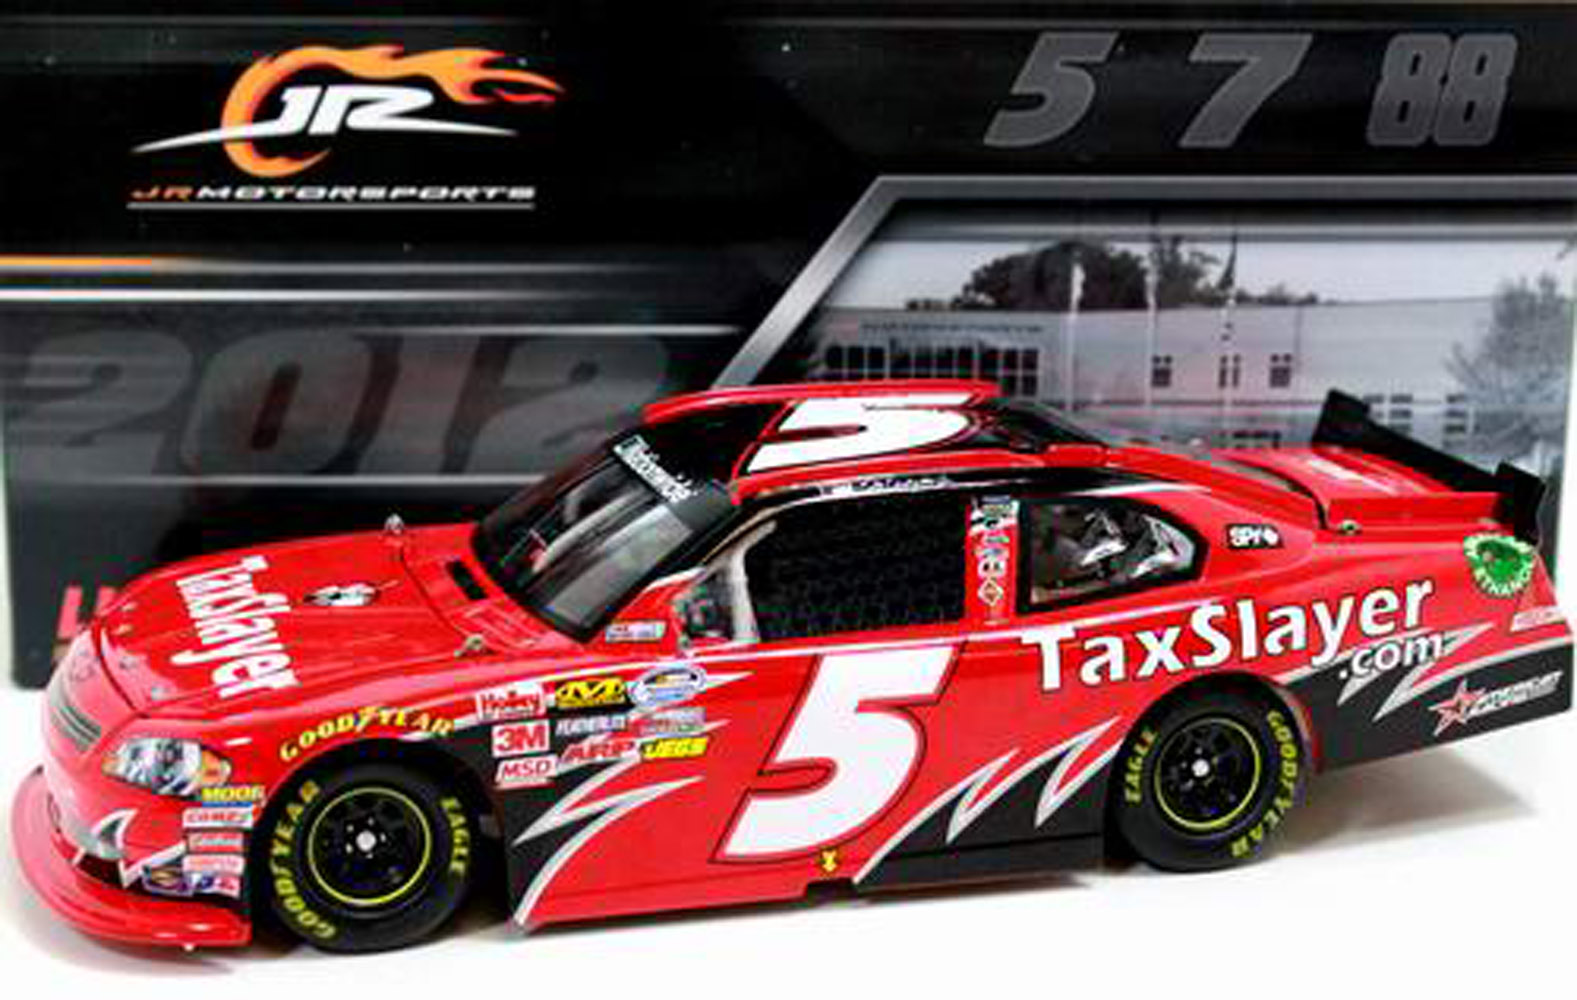 2012 Dale Earnhardt Jr #5 Taxslayer NW 1/24  Diecast Car